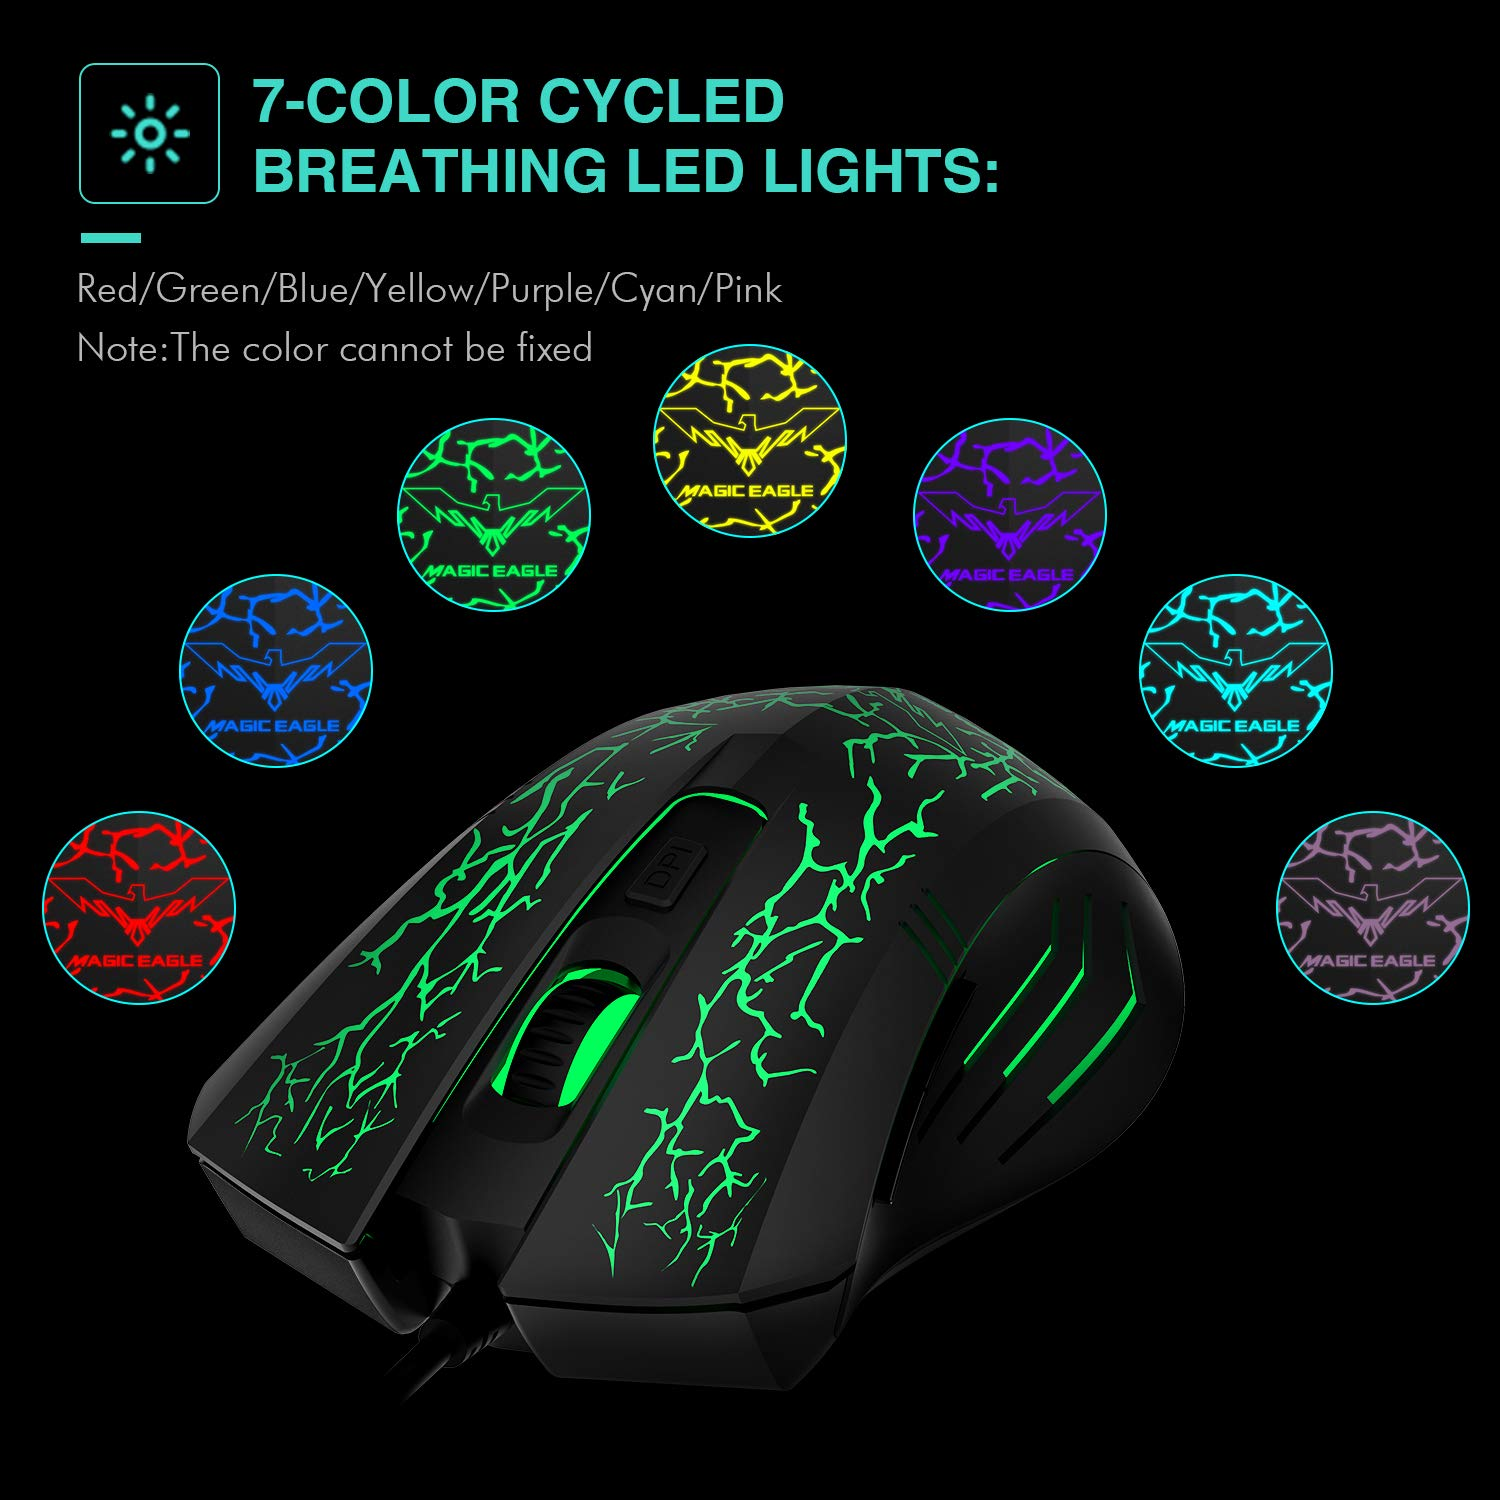 64bb54d84fe Amazon.com: HAVIT HV-MS672 3200DPI Wired Mouse, 4 Adjustable DPI Levels,  800/1200/2400/3200DPI, 7 Circular & Breathing LED Light, 6 Buttons (Black):  ...